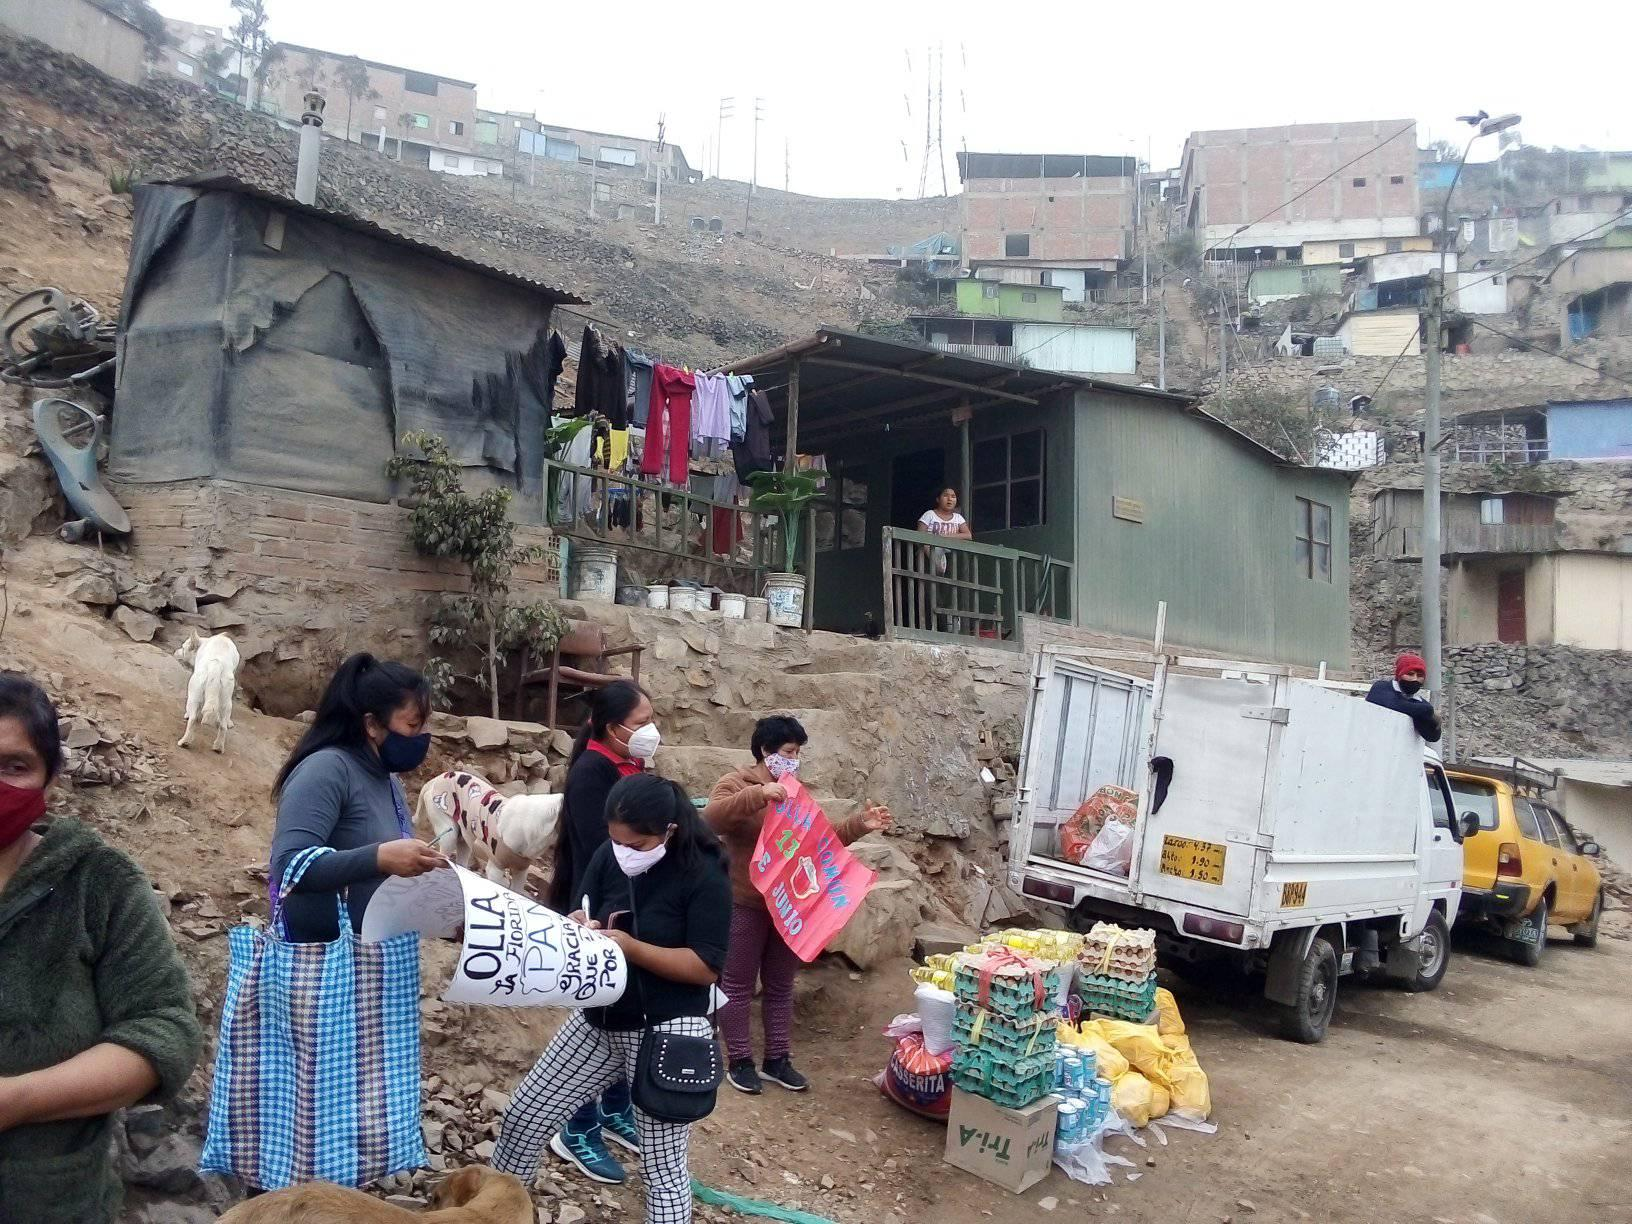 Unload - Distribution of the Olla Común food products. Photo taken by Pastor Pedro Pablo García.